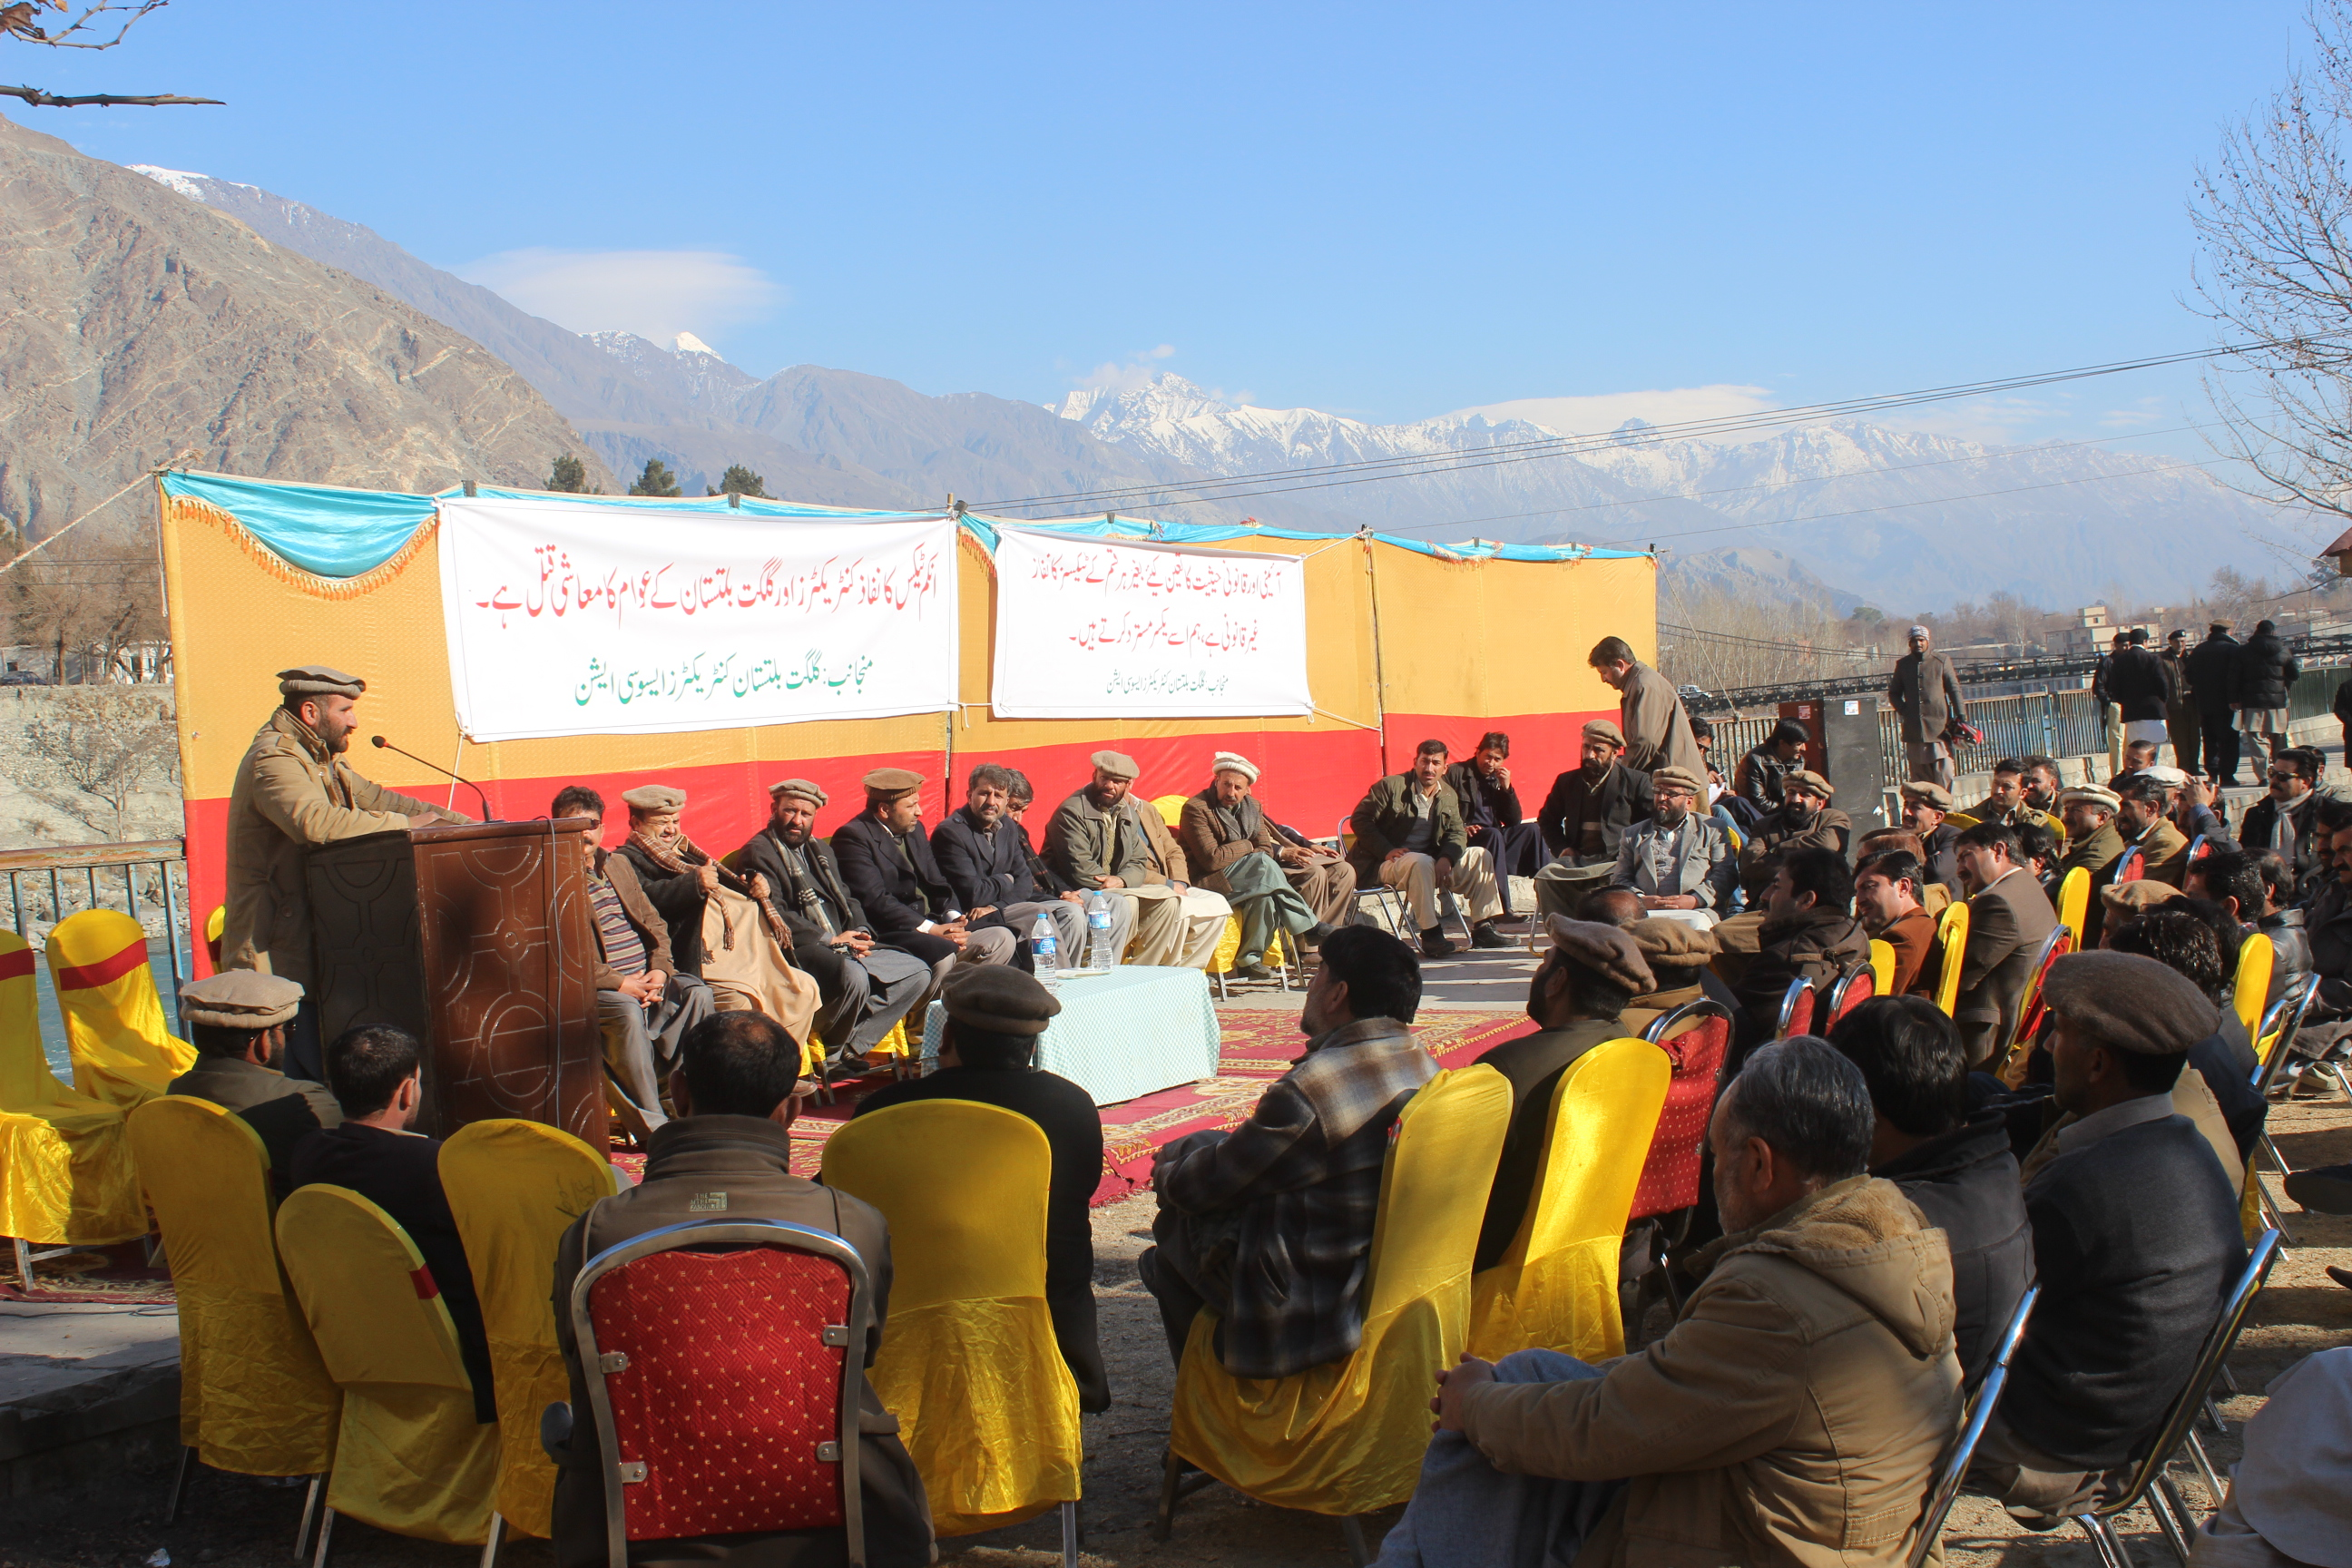 [Video] Contractors stage protest against imposition of tax in Gilgit-Baltistan